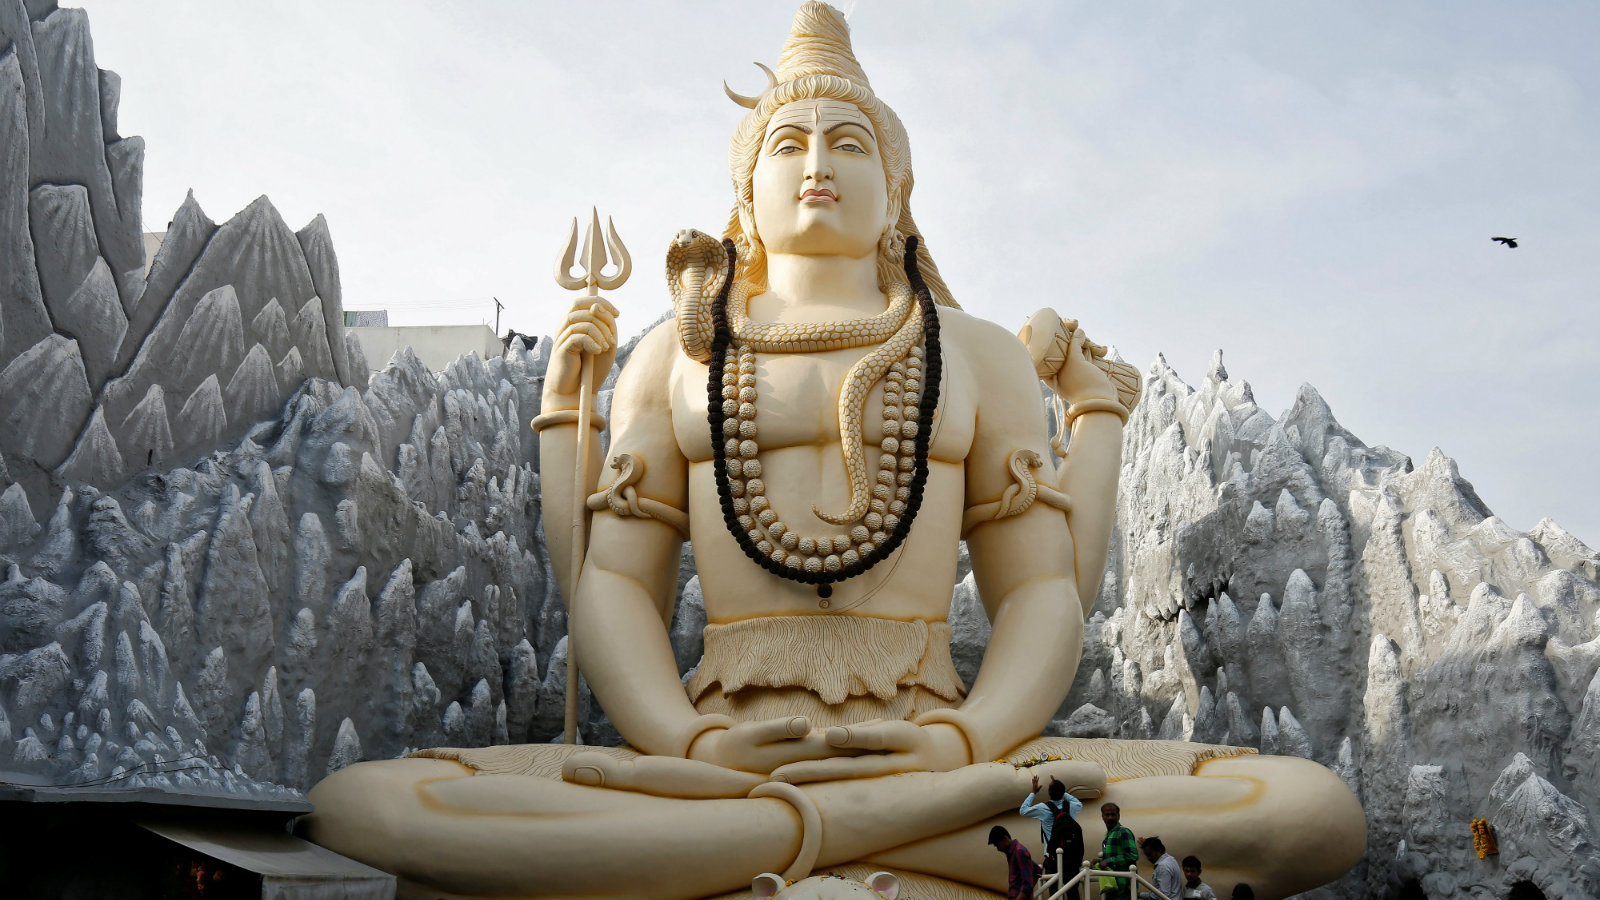 Devotees offer prayers and perform rituals before a statue of Lord Shiva in Bengaluru.